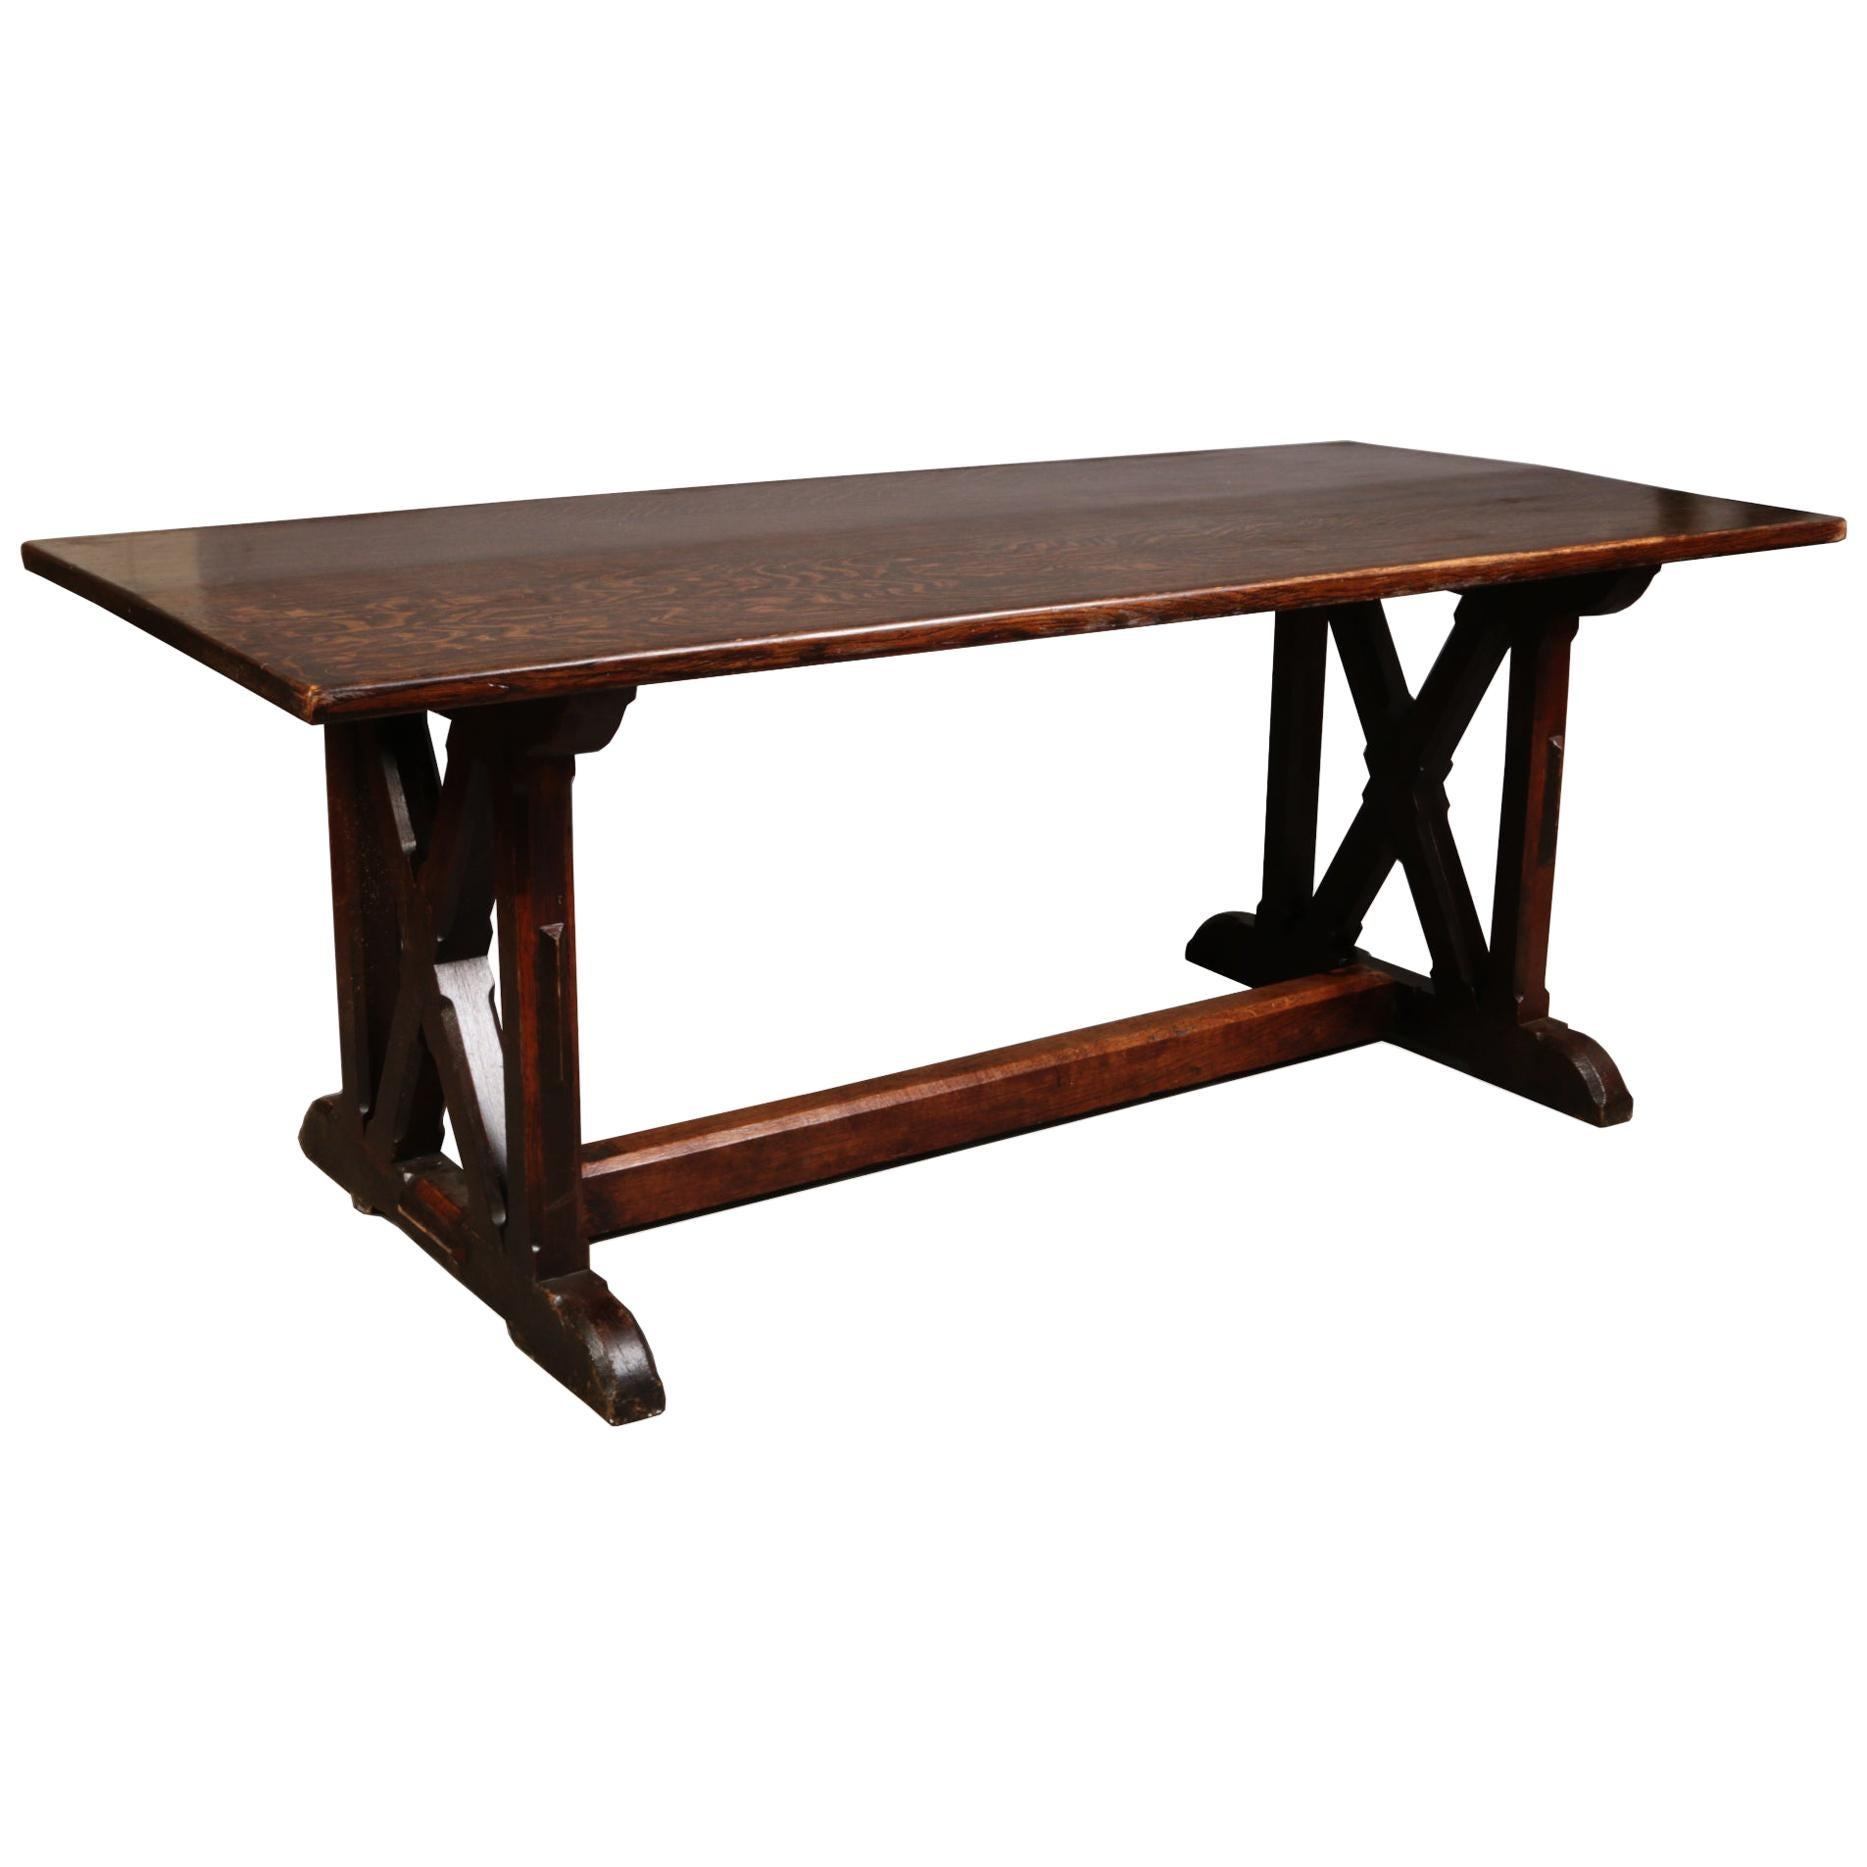 Arts & Crafts Oak Refectory Dining Table with Wonderful Figuring to the Grain